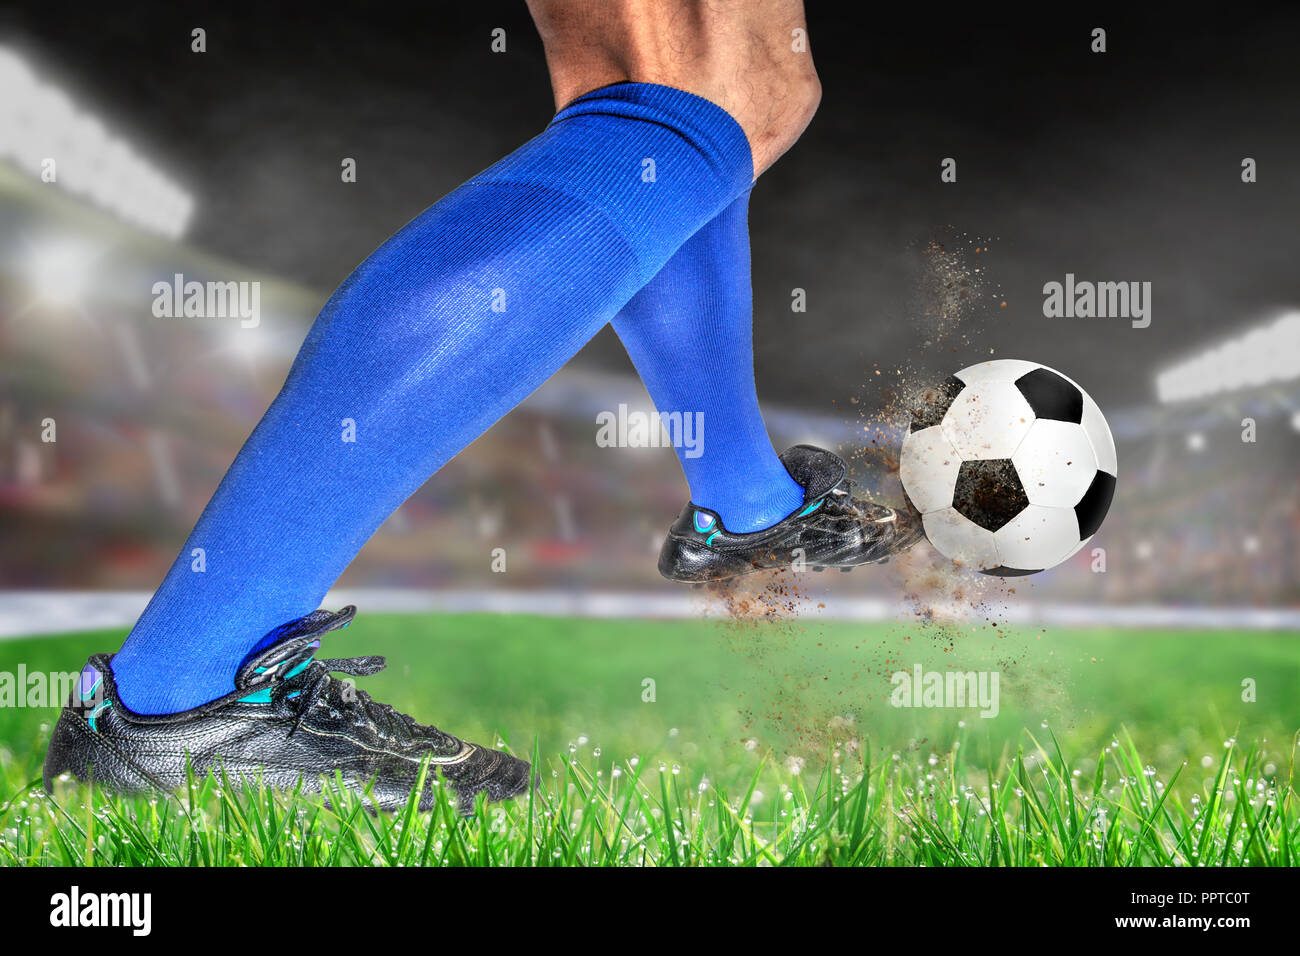 Soccer player in action with football in brightly lit outdoor stadium. Focus on foreground and soccer ball with shallow depth of field on background a - Stock Image